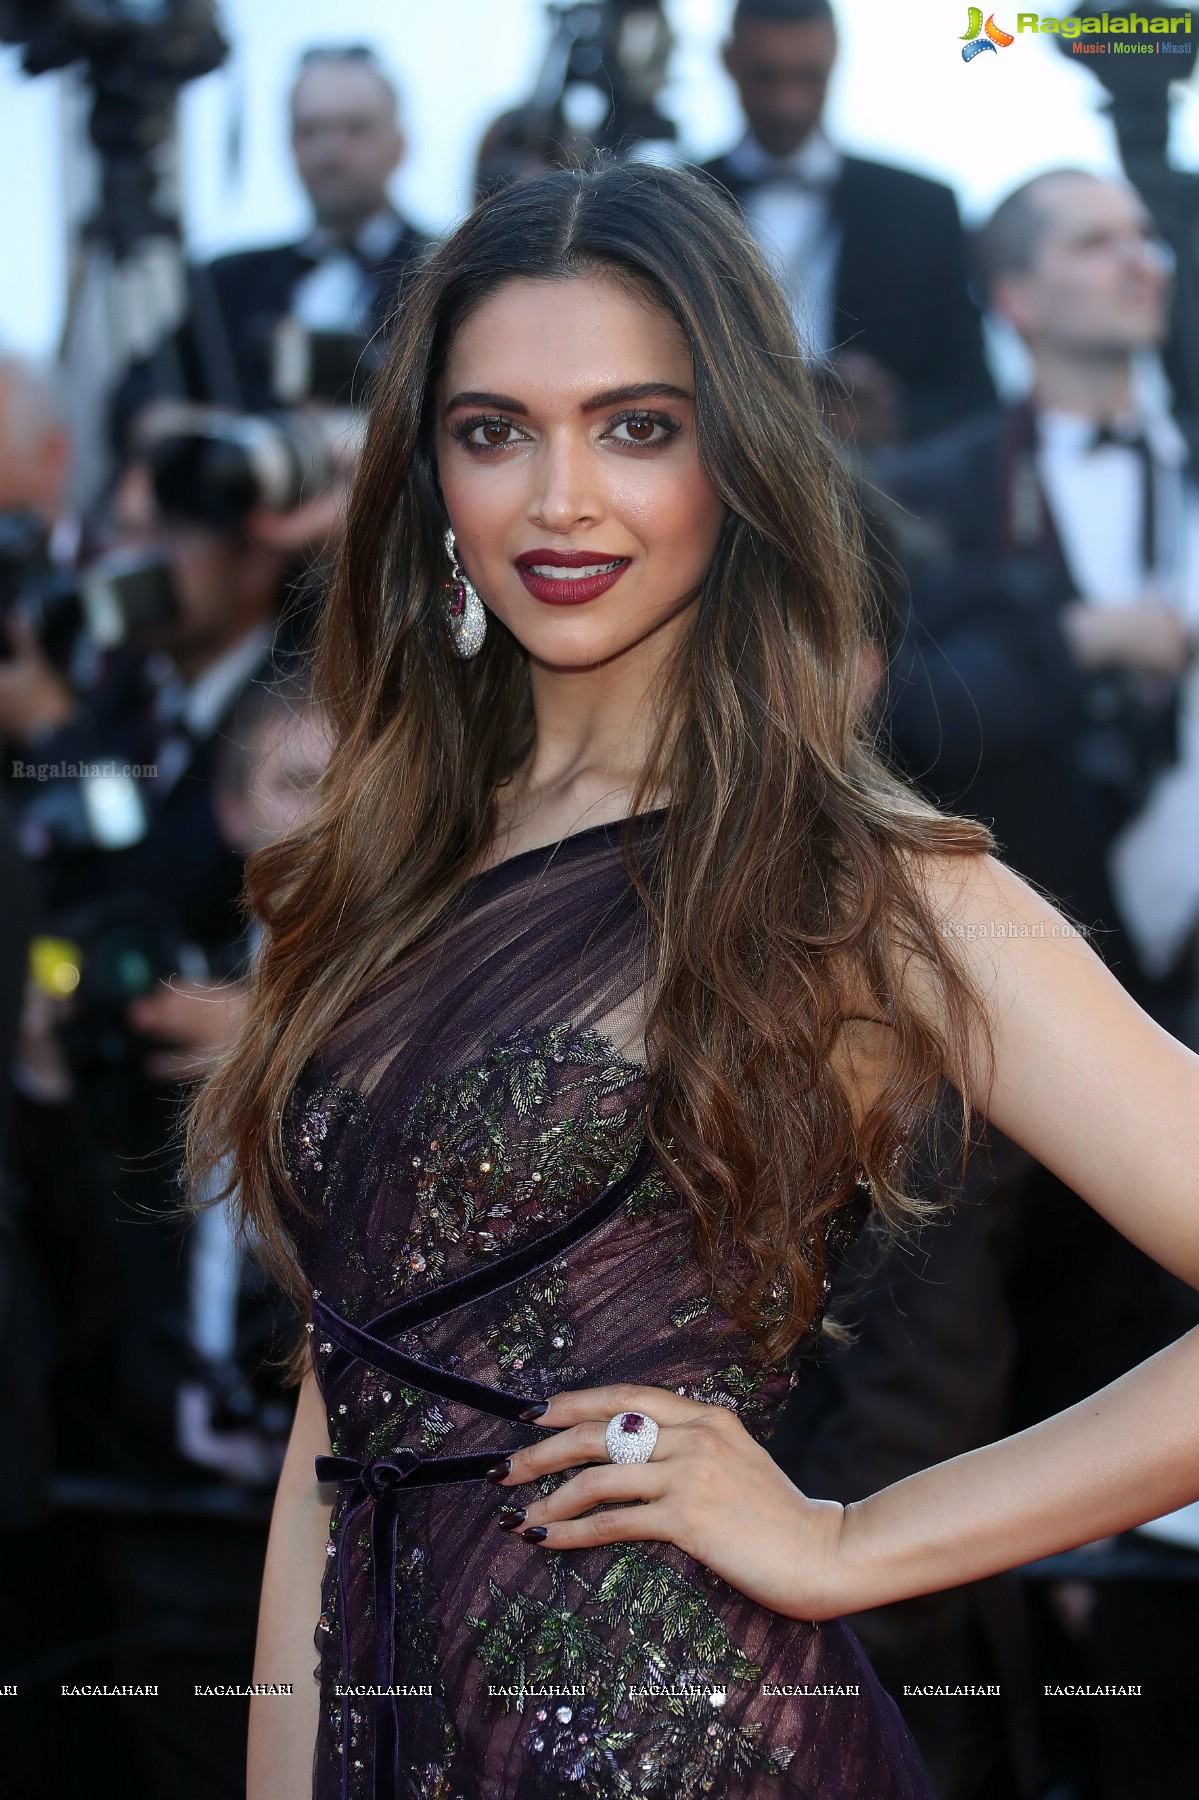 Deepika Padukone Image 1 | Tollywood Actress Wallpapers ...